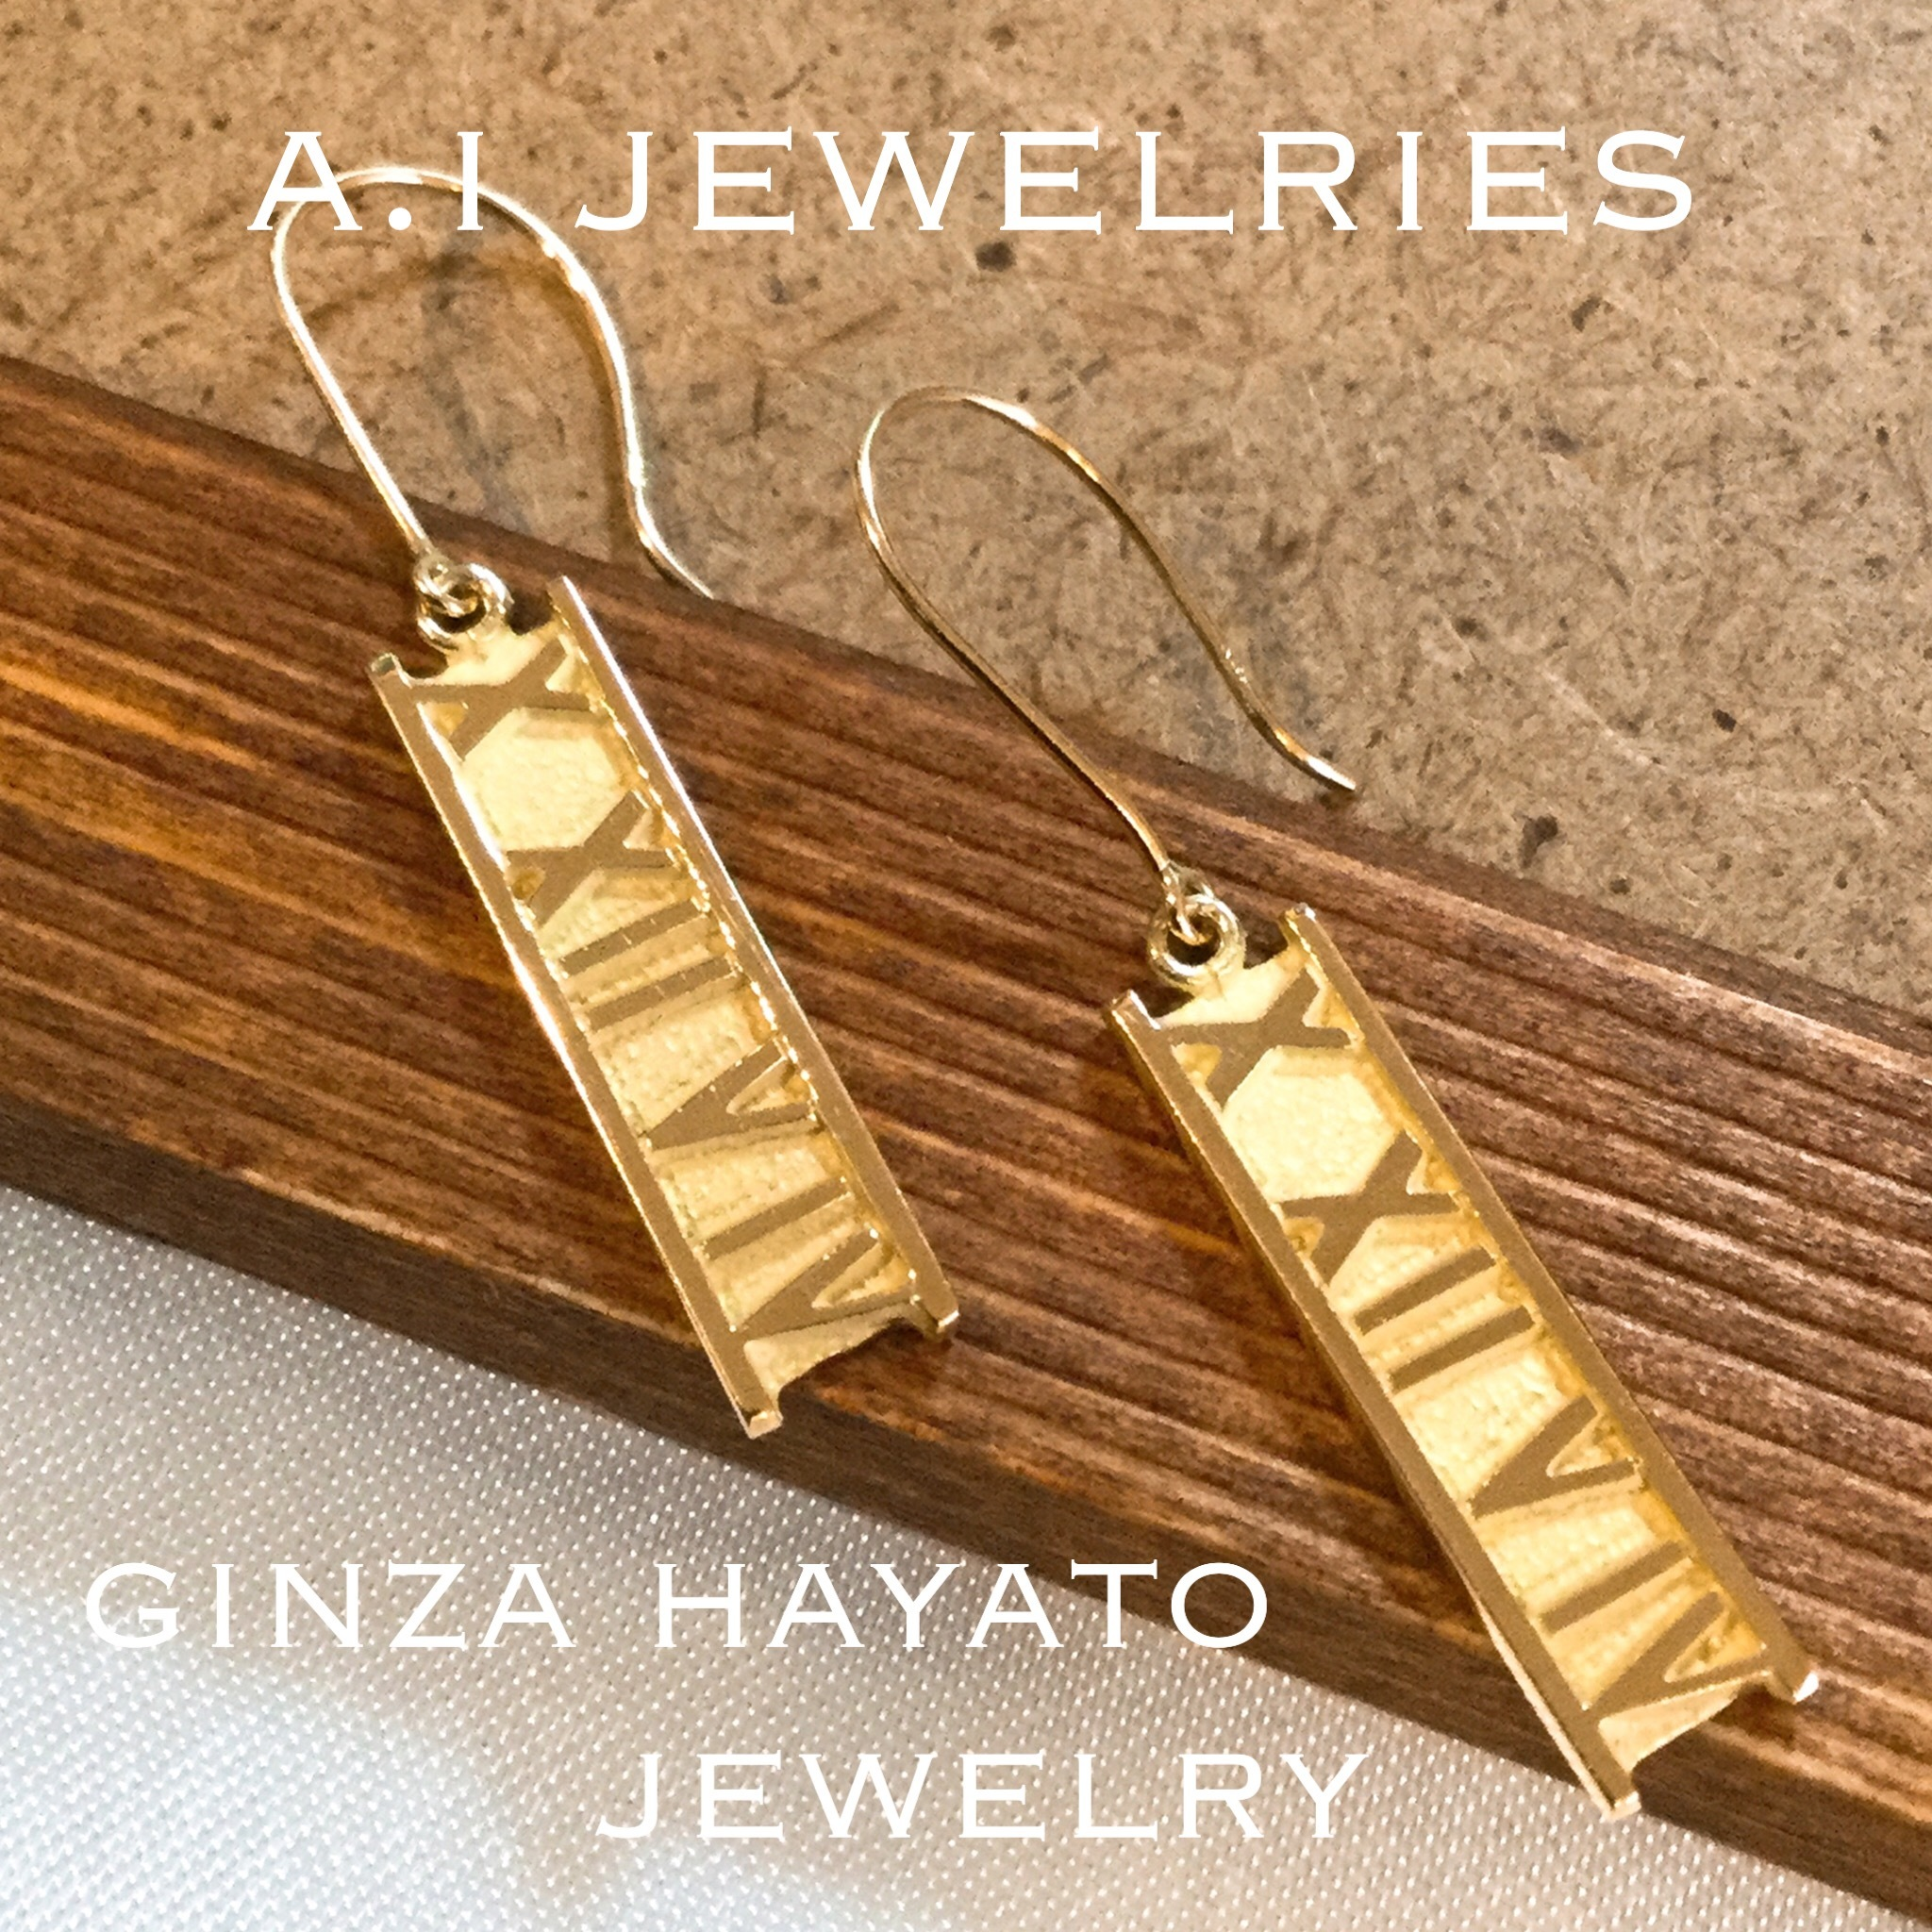 finest selection 219c2 d4204 k18 18金 アトラス ピアス   A.I JEWELRIES / エイアイジュエリーズ powered by BASE